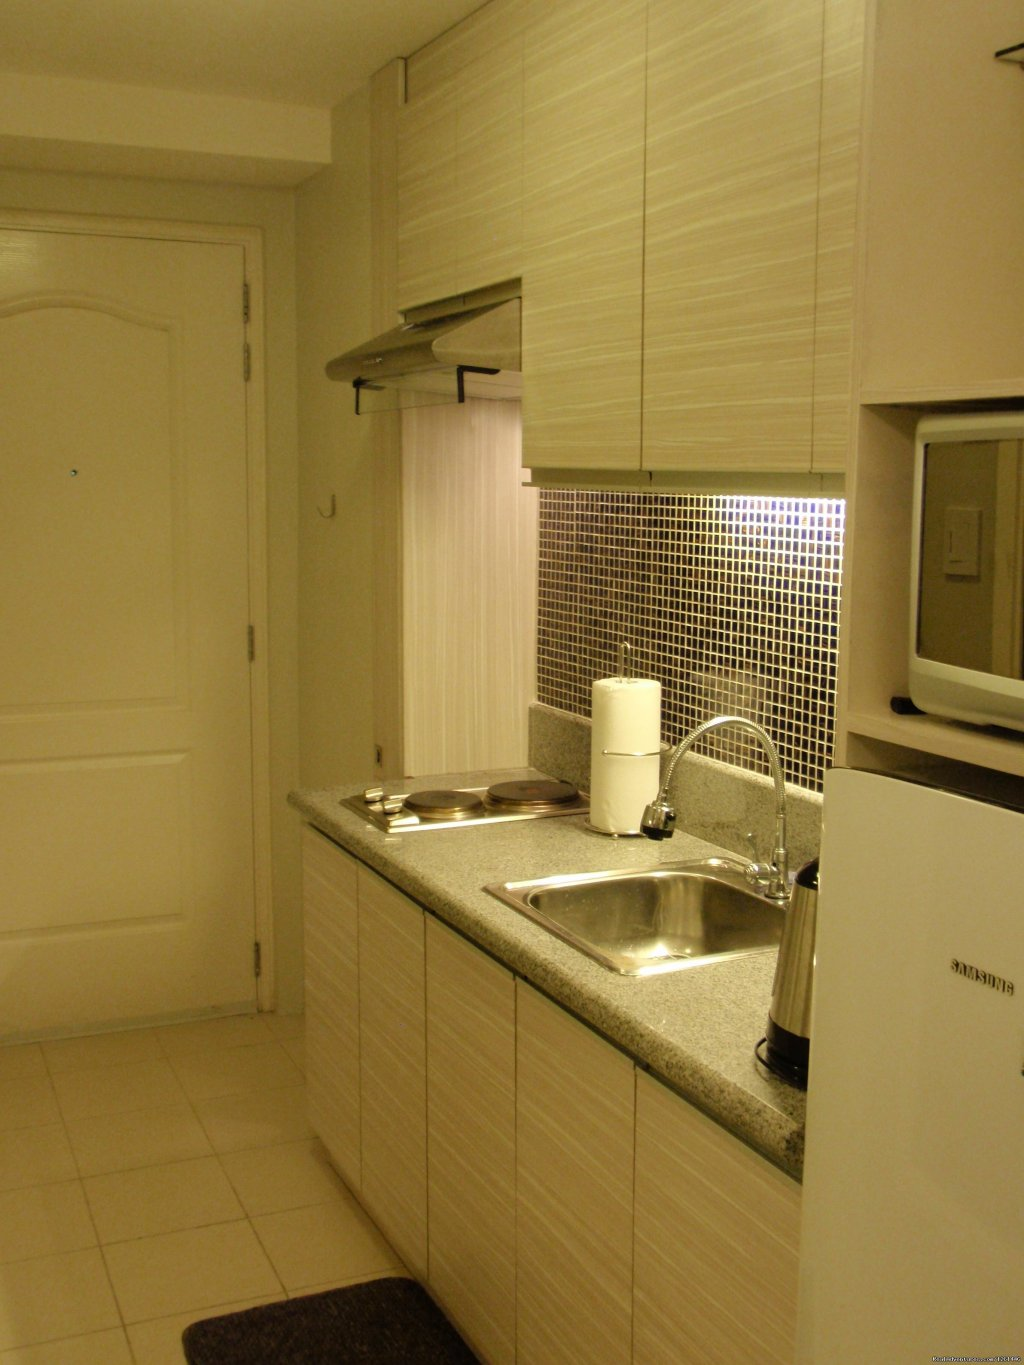 30th Floor Unit Kitchen | Image #20/26 | Fully Furnished Studio-Condo Unit in Manila